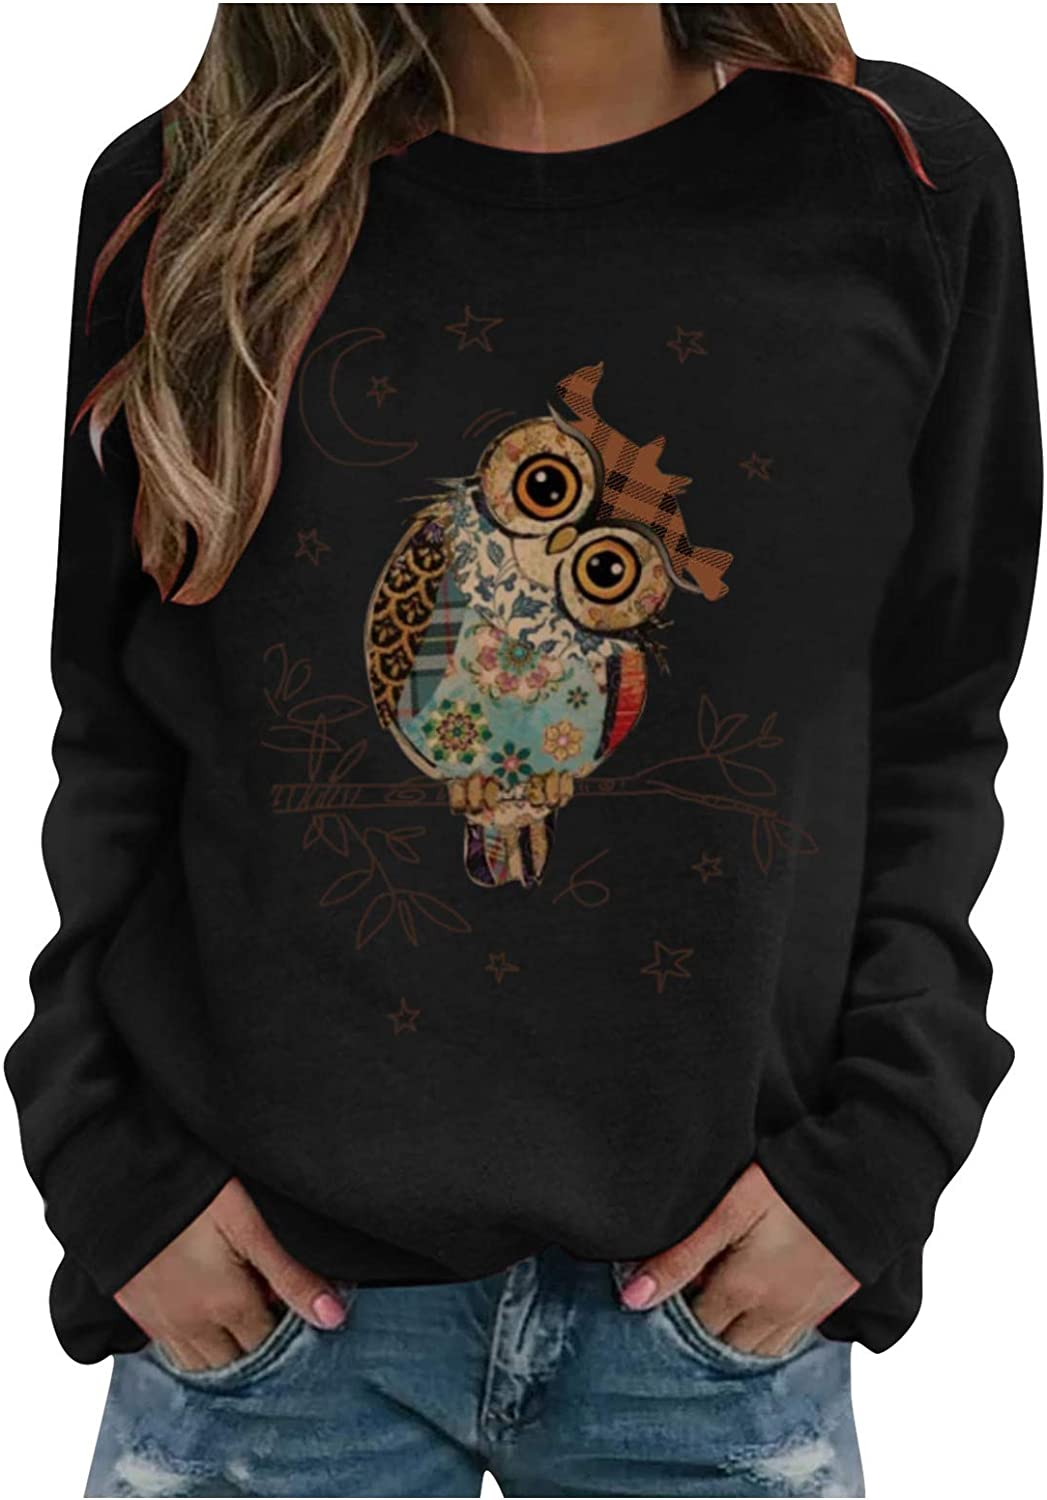 Sweatshirt Tunics for Women Funny Owl Graphic Tee Shirt Long Sleeve Crewneck Casual Pullover Loose Blouse Shirt Tops